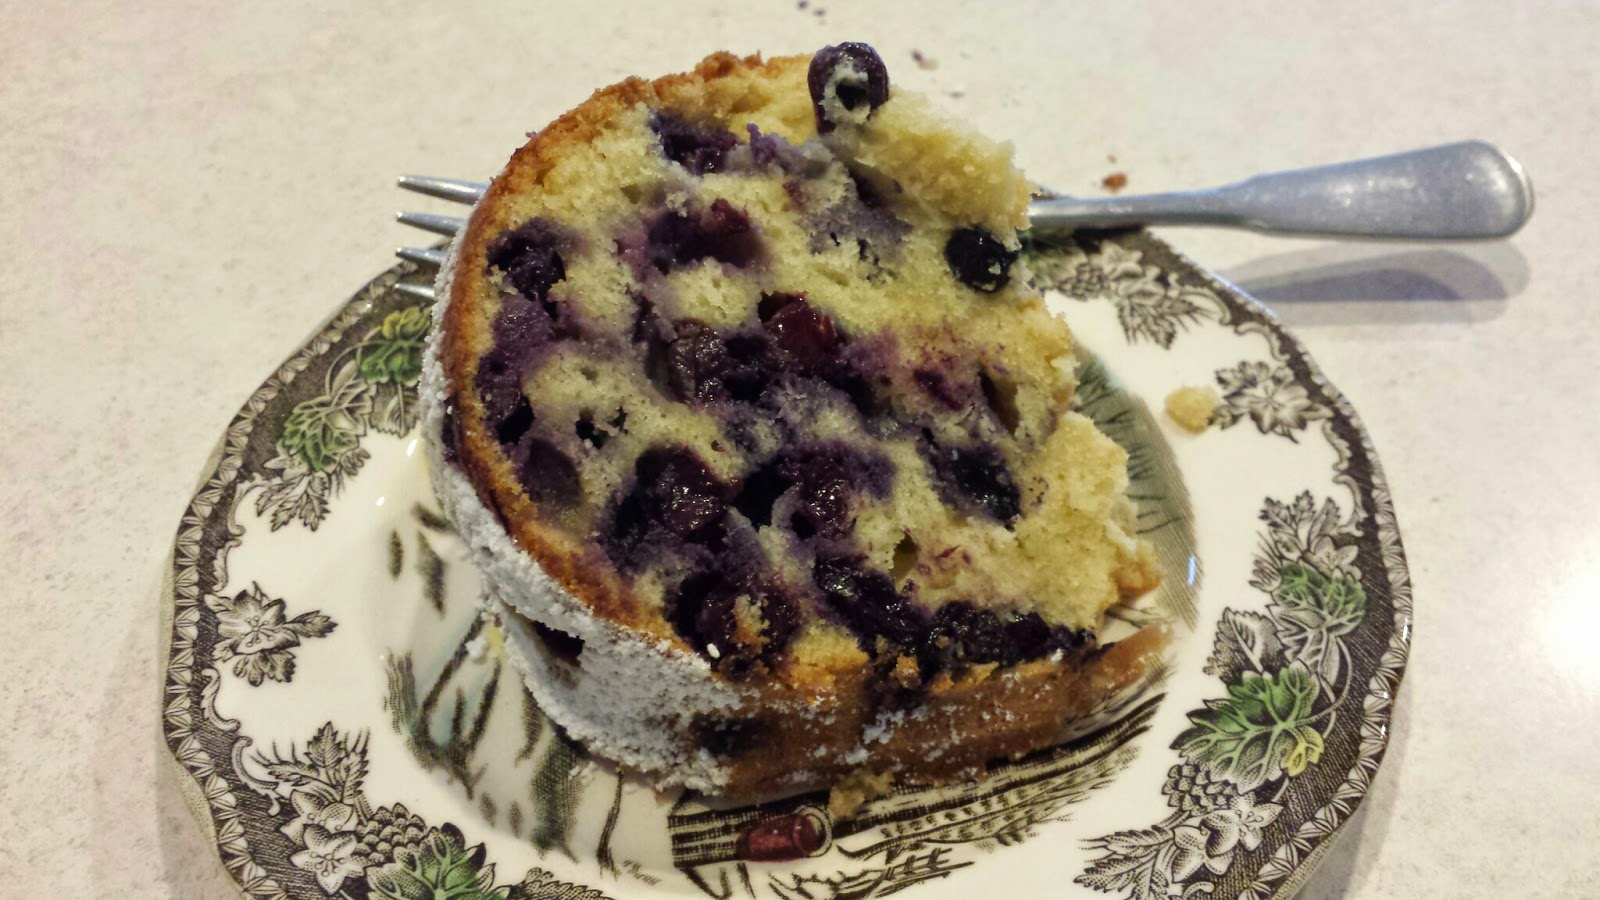 My Patchwork Quilt: BLUEBERRY-LEMON BUNDT CAKE